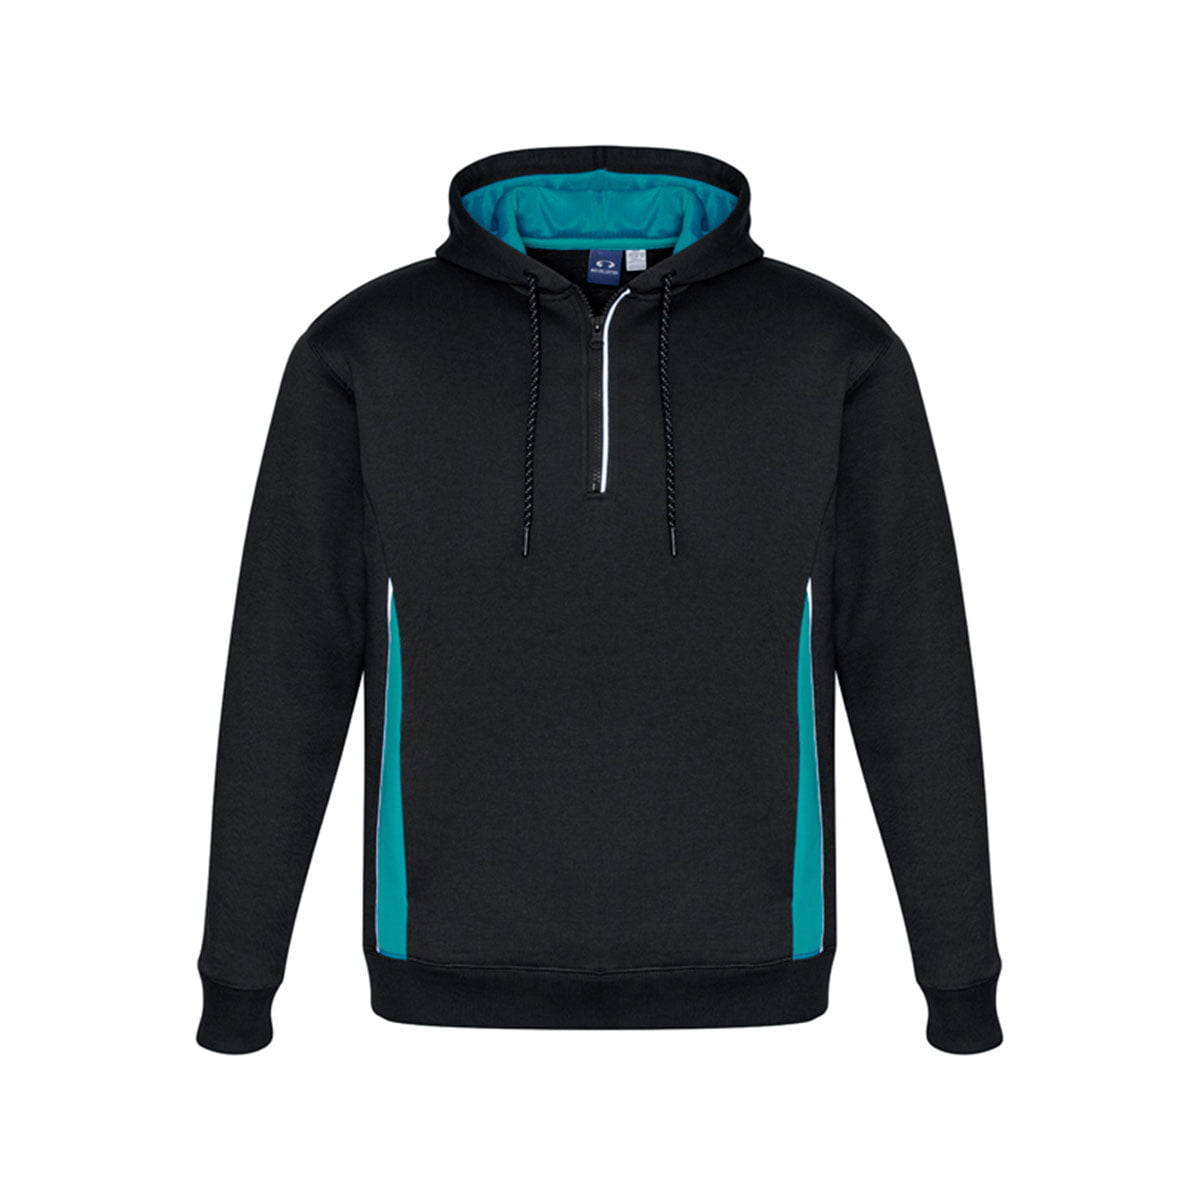 Adults Renegade Hoodie-Black / Teal / Silver